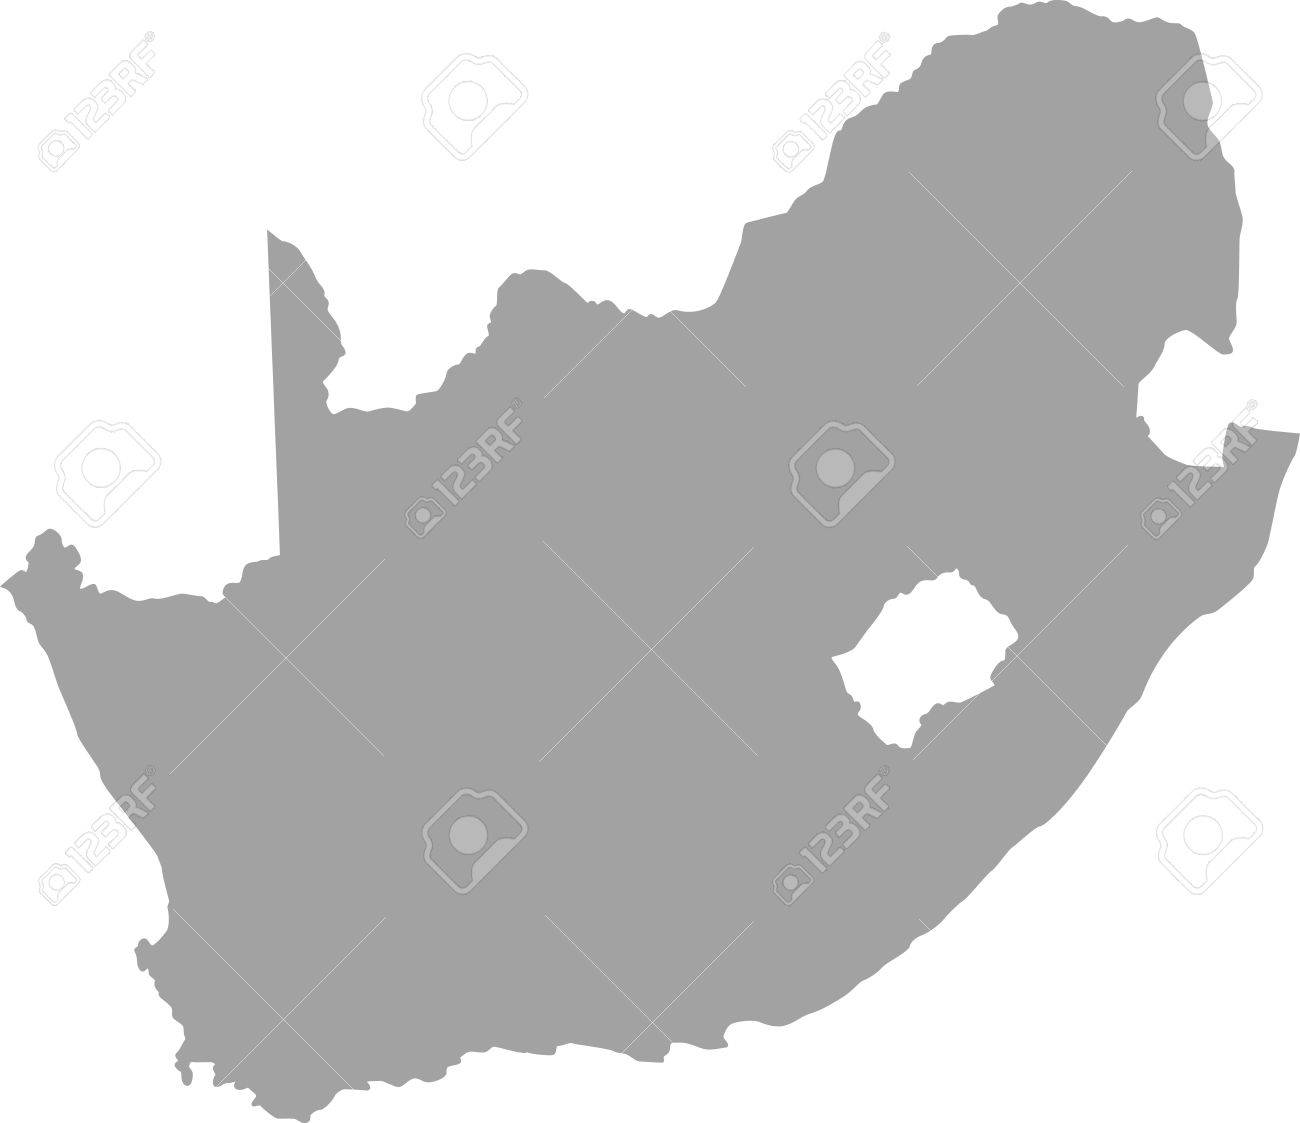 South Africa Map Outline In Gray Color Royalty Free Cliparts